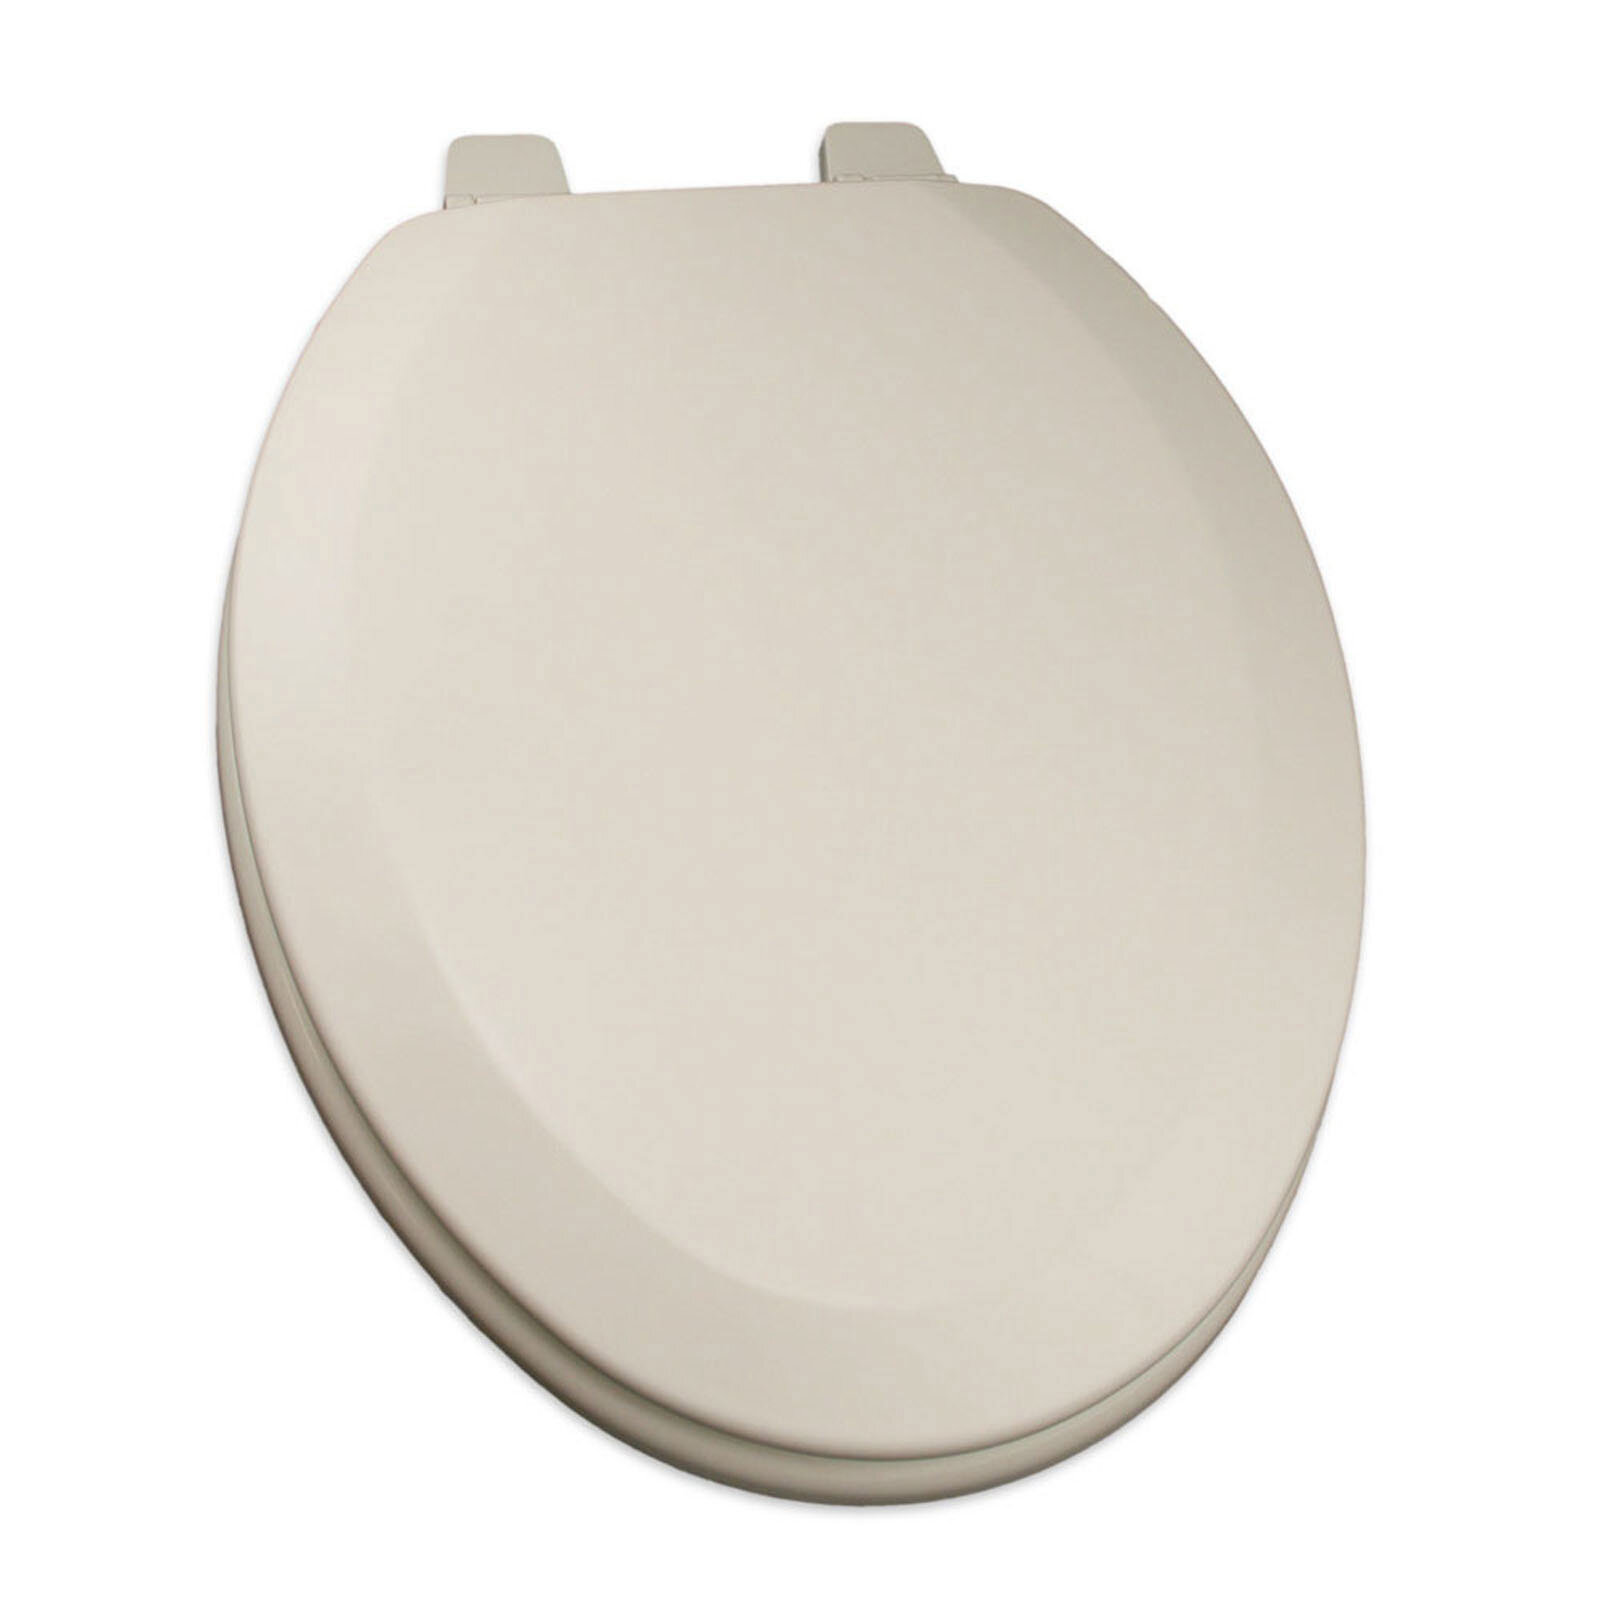 Comfort Seats Deluxe Molded Wood Elongated Toilet Seat & Reviews ...